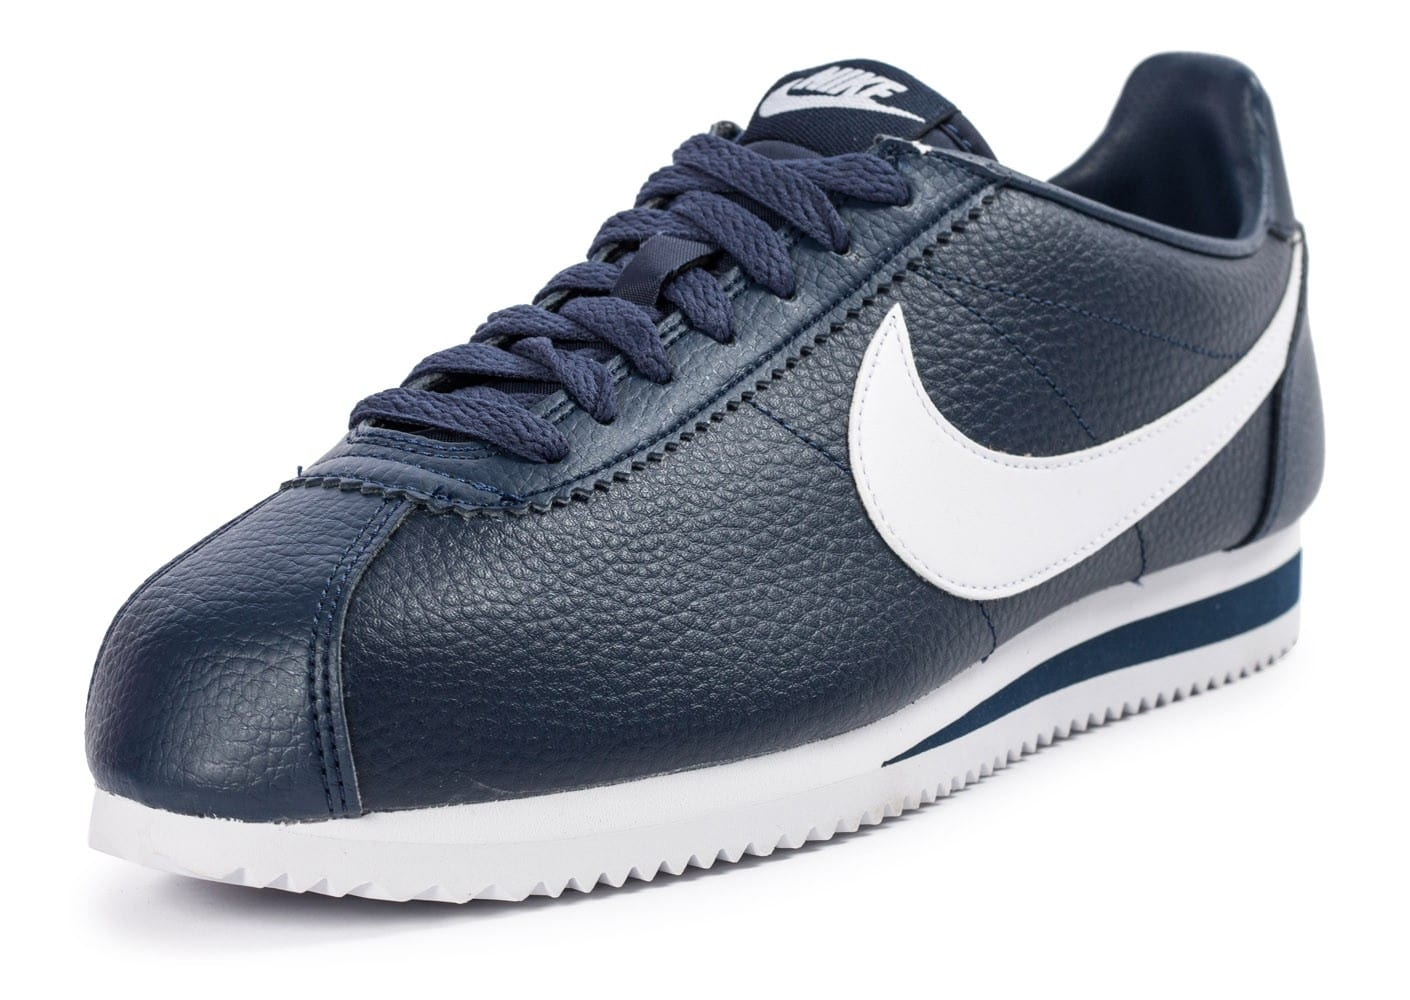 nike cortez leather bleu marine chaussures homme chausport. Black Bedroom Furniture Sets. Home Design Ideas